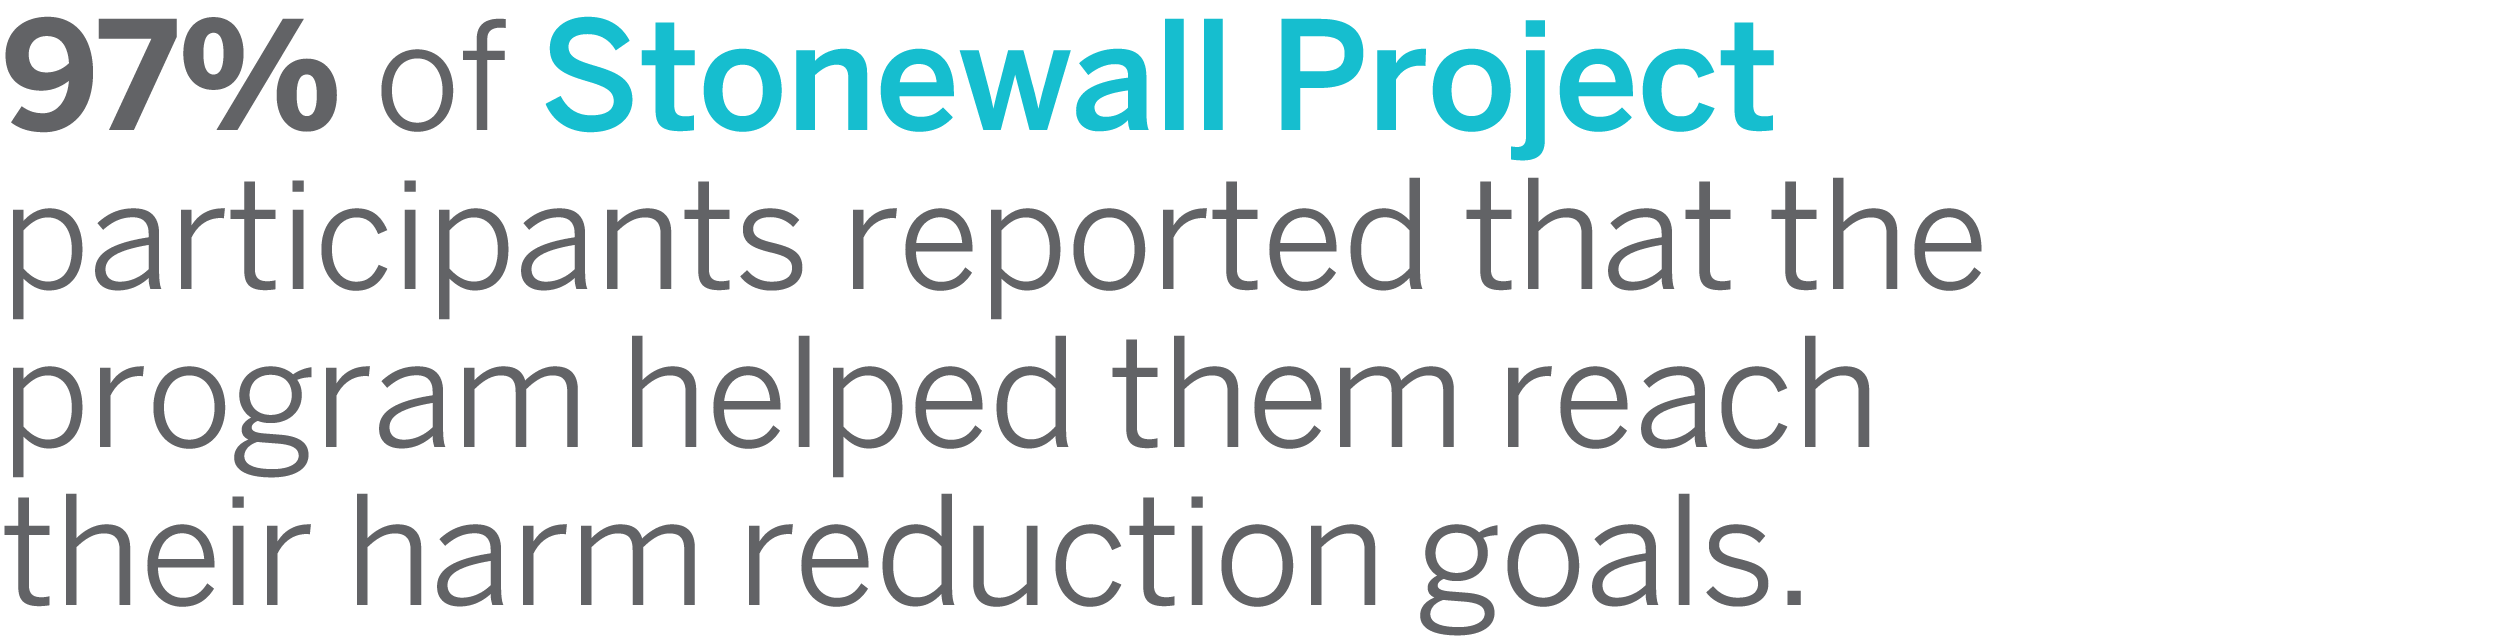 97 percent of the Stonewall Project participants reported that the program helped them reach their harm reduction goals